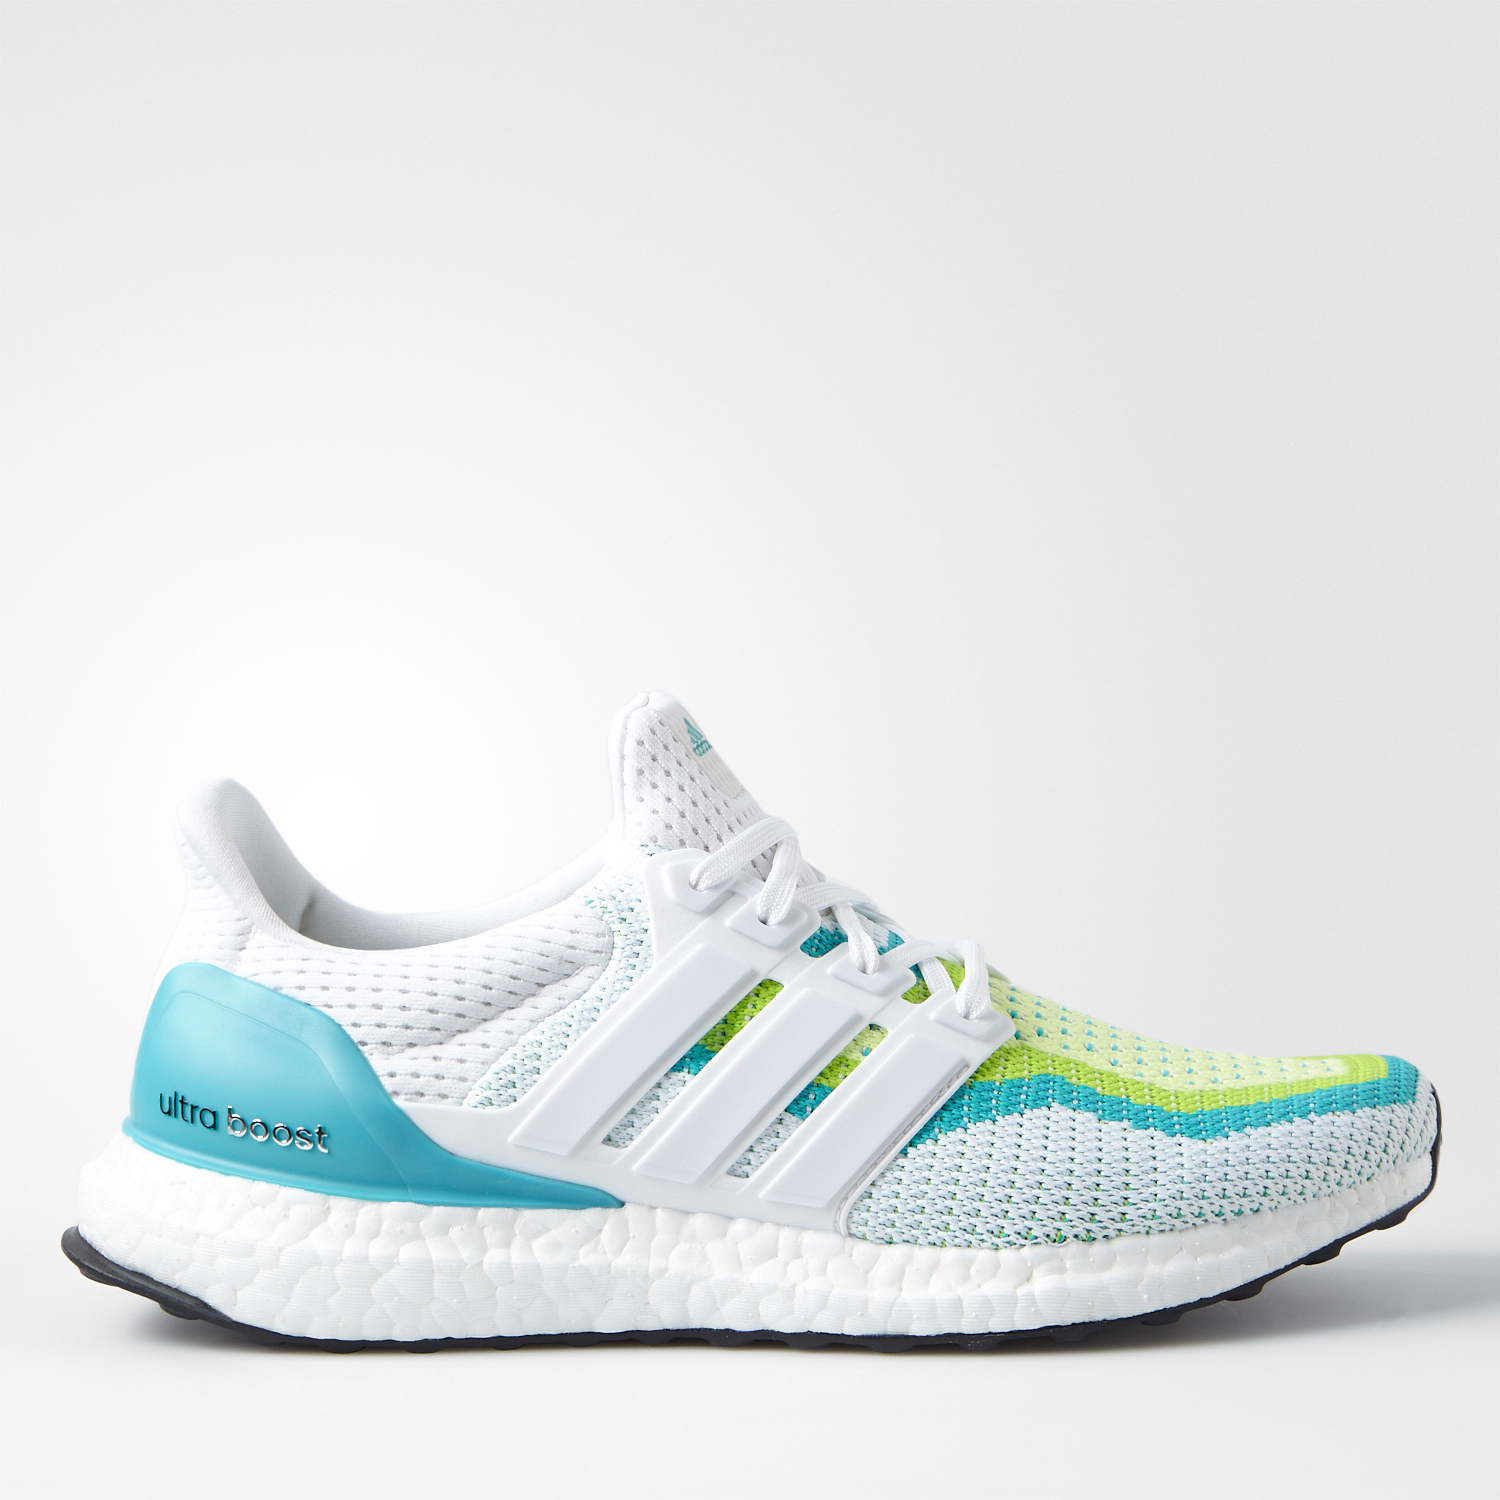 Adidas Boost soldes blanche